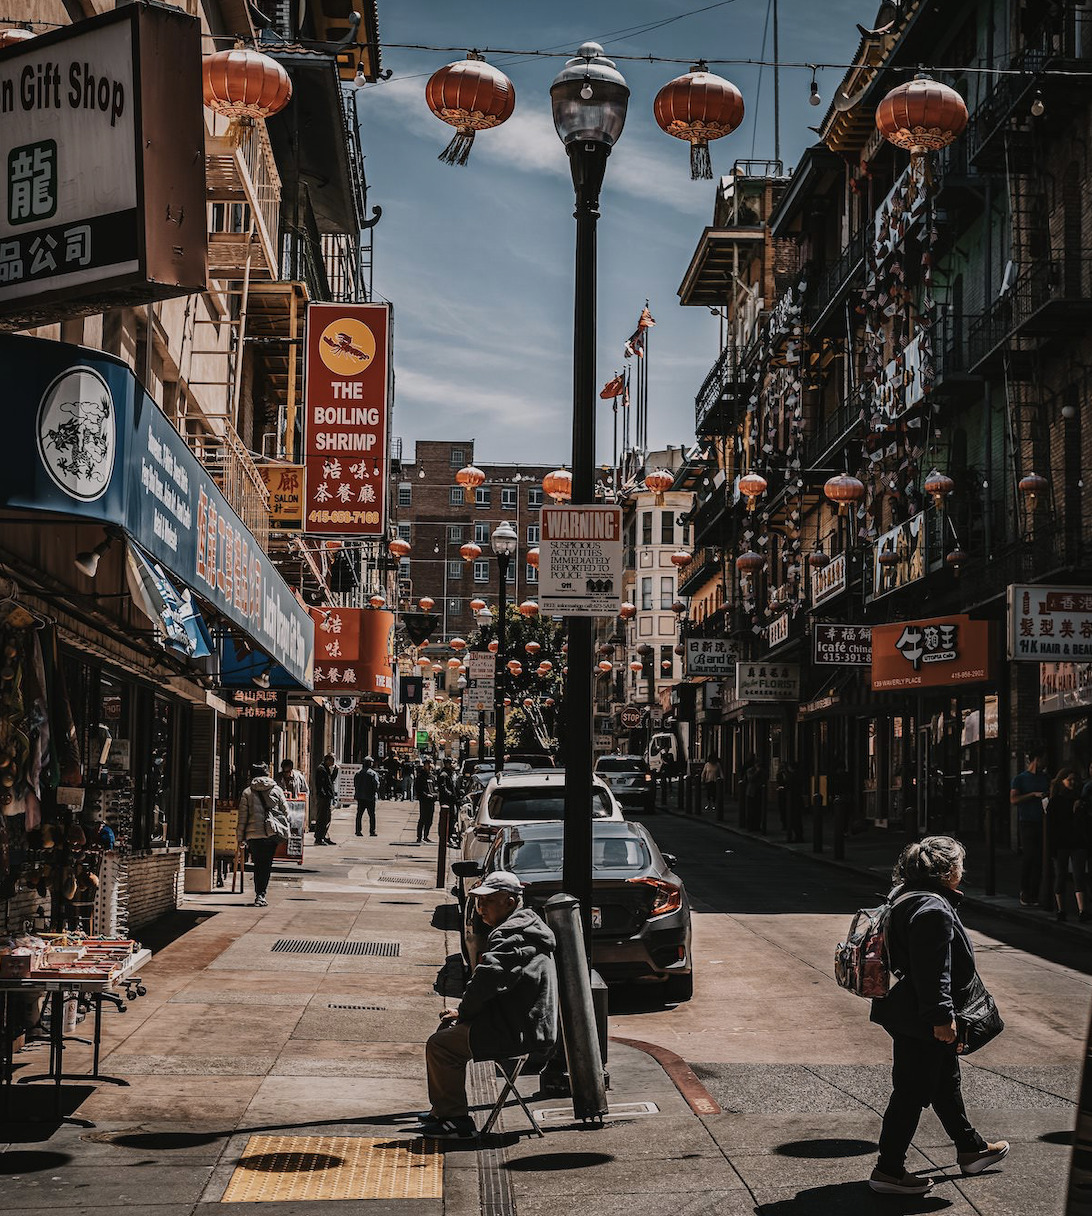 china town san francisco best photography location spots in san francisco california